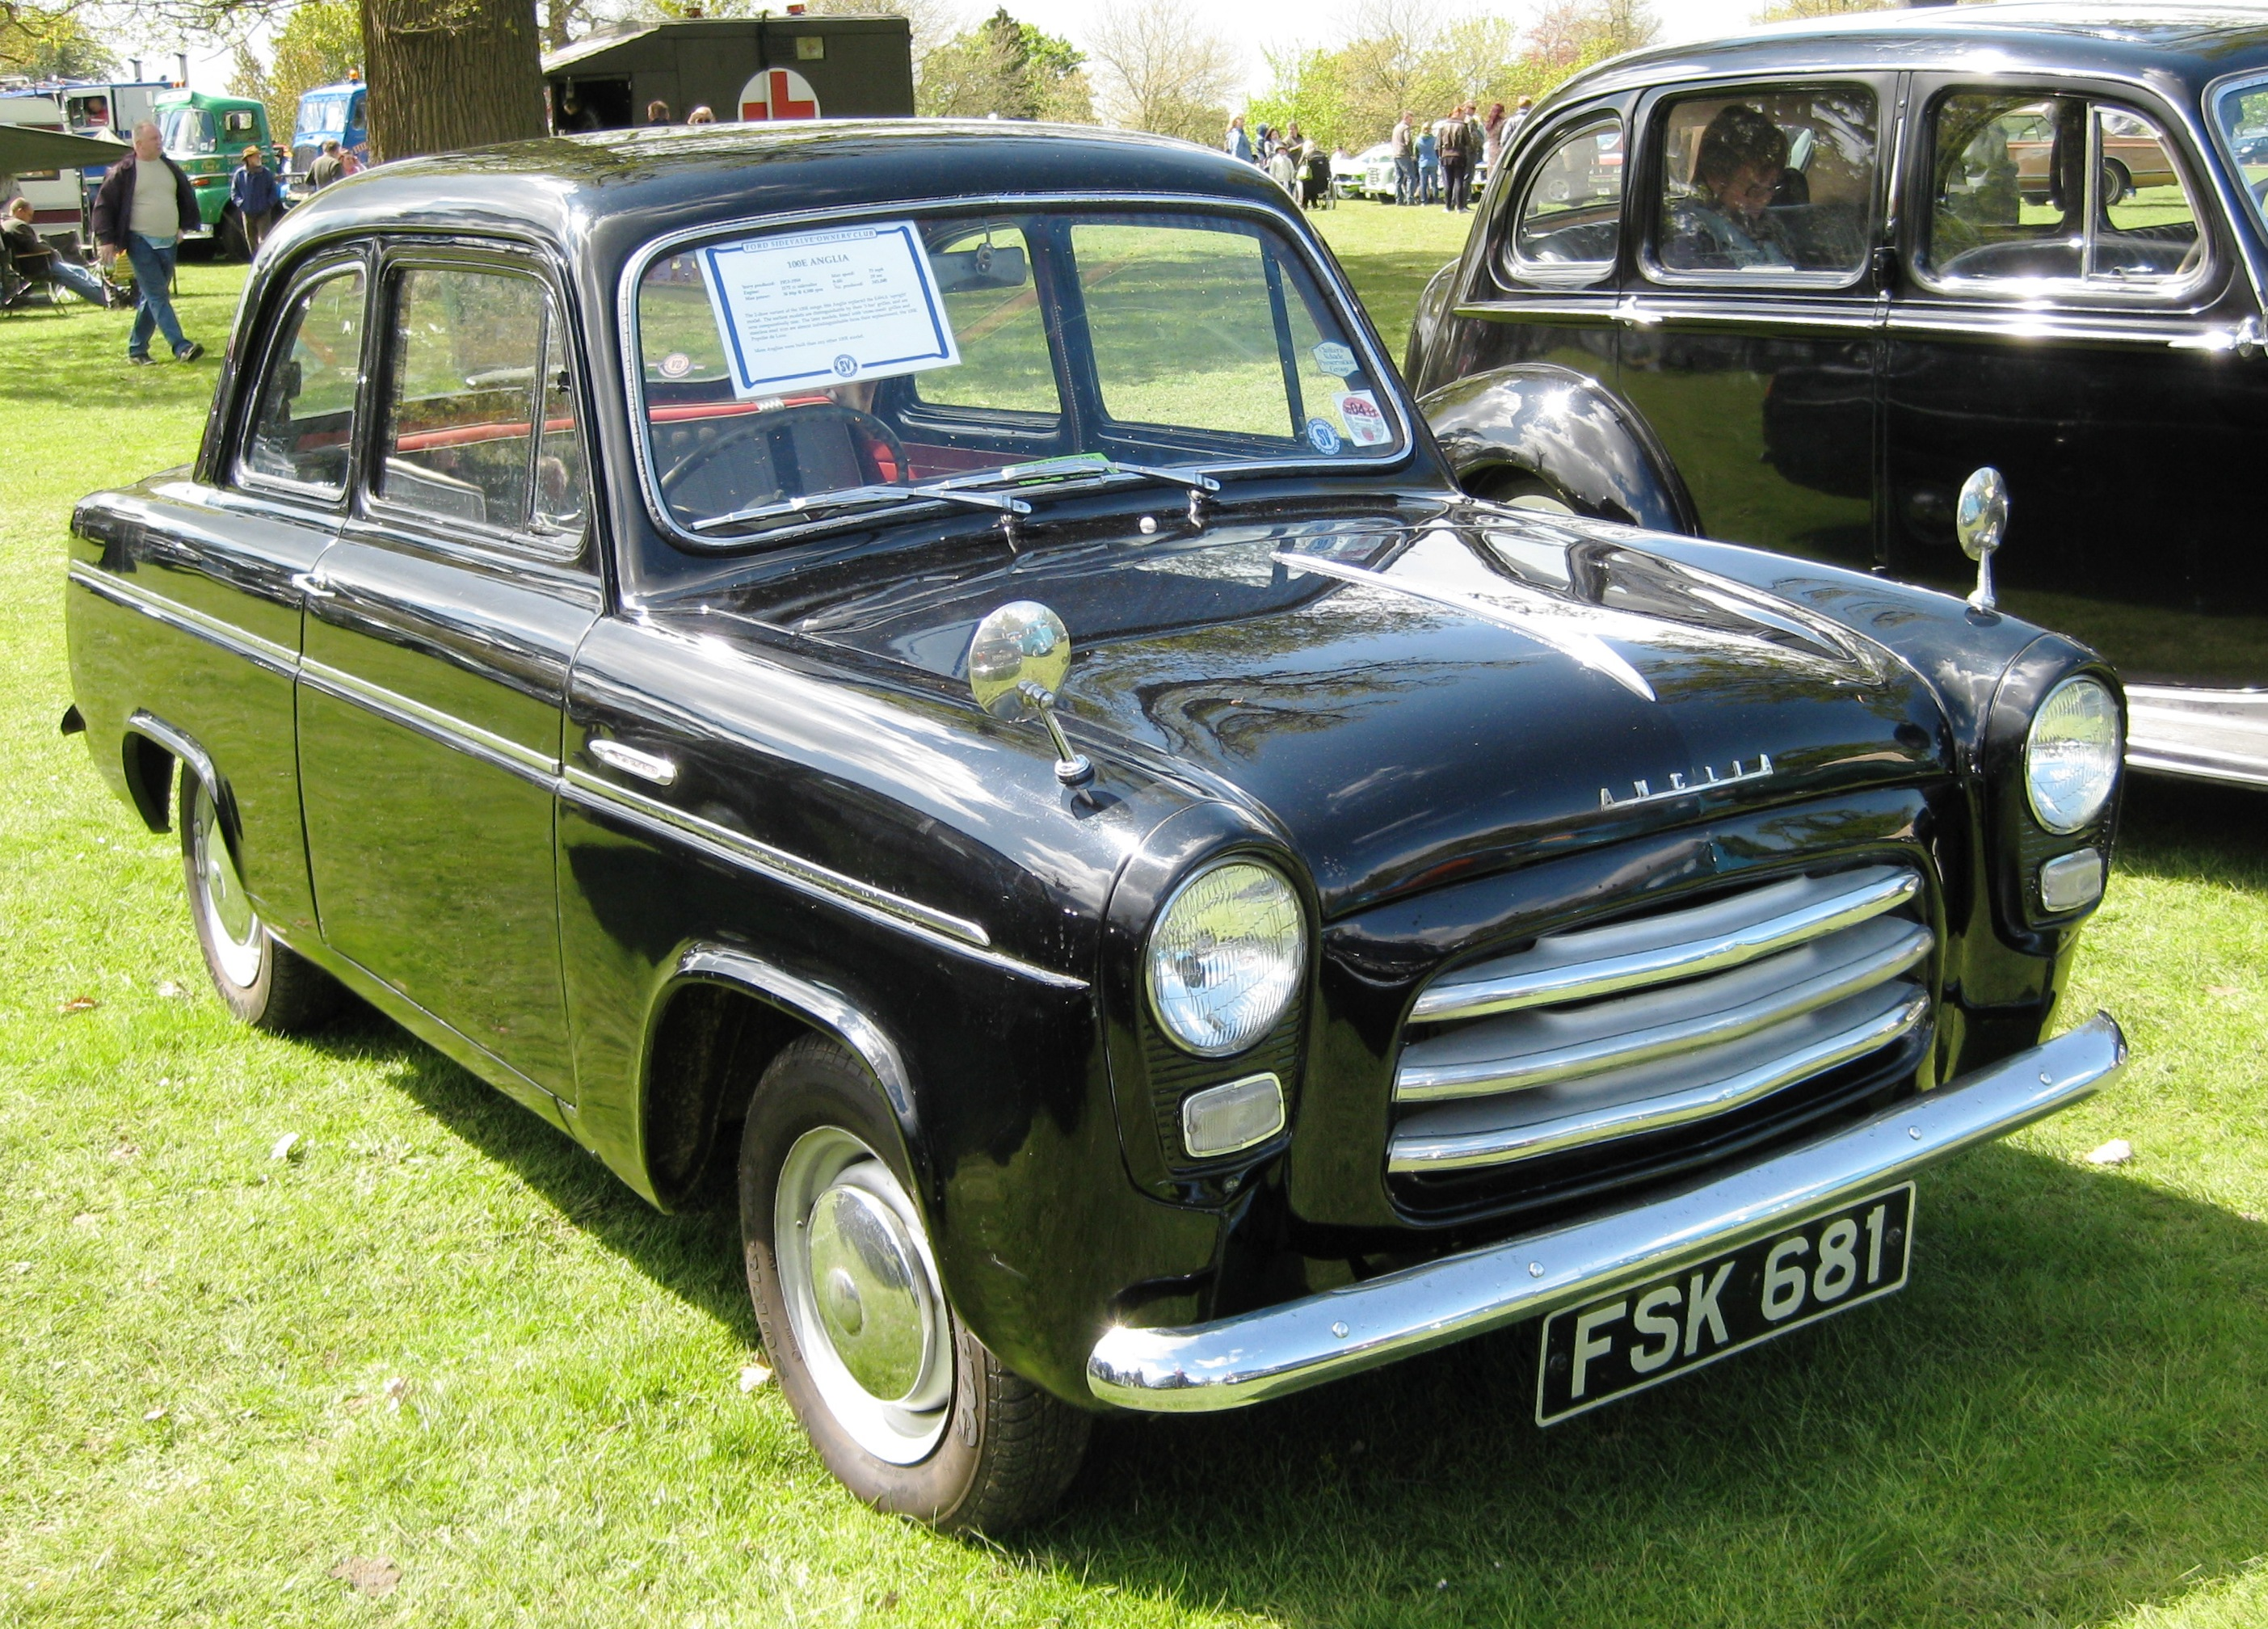 Fileford anglia 1172 cc december 1955 jpg